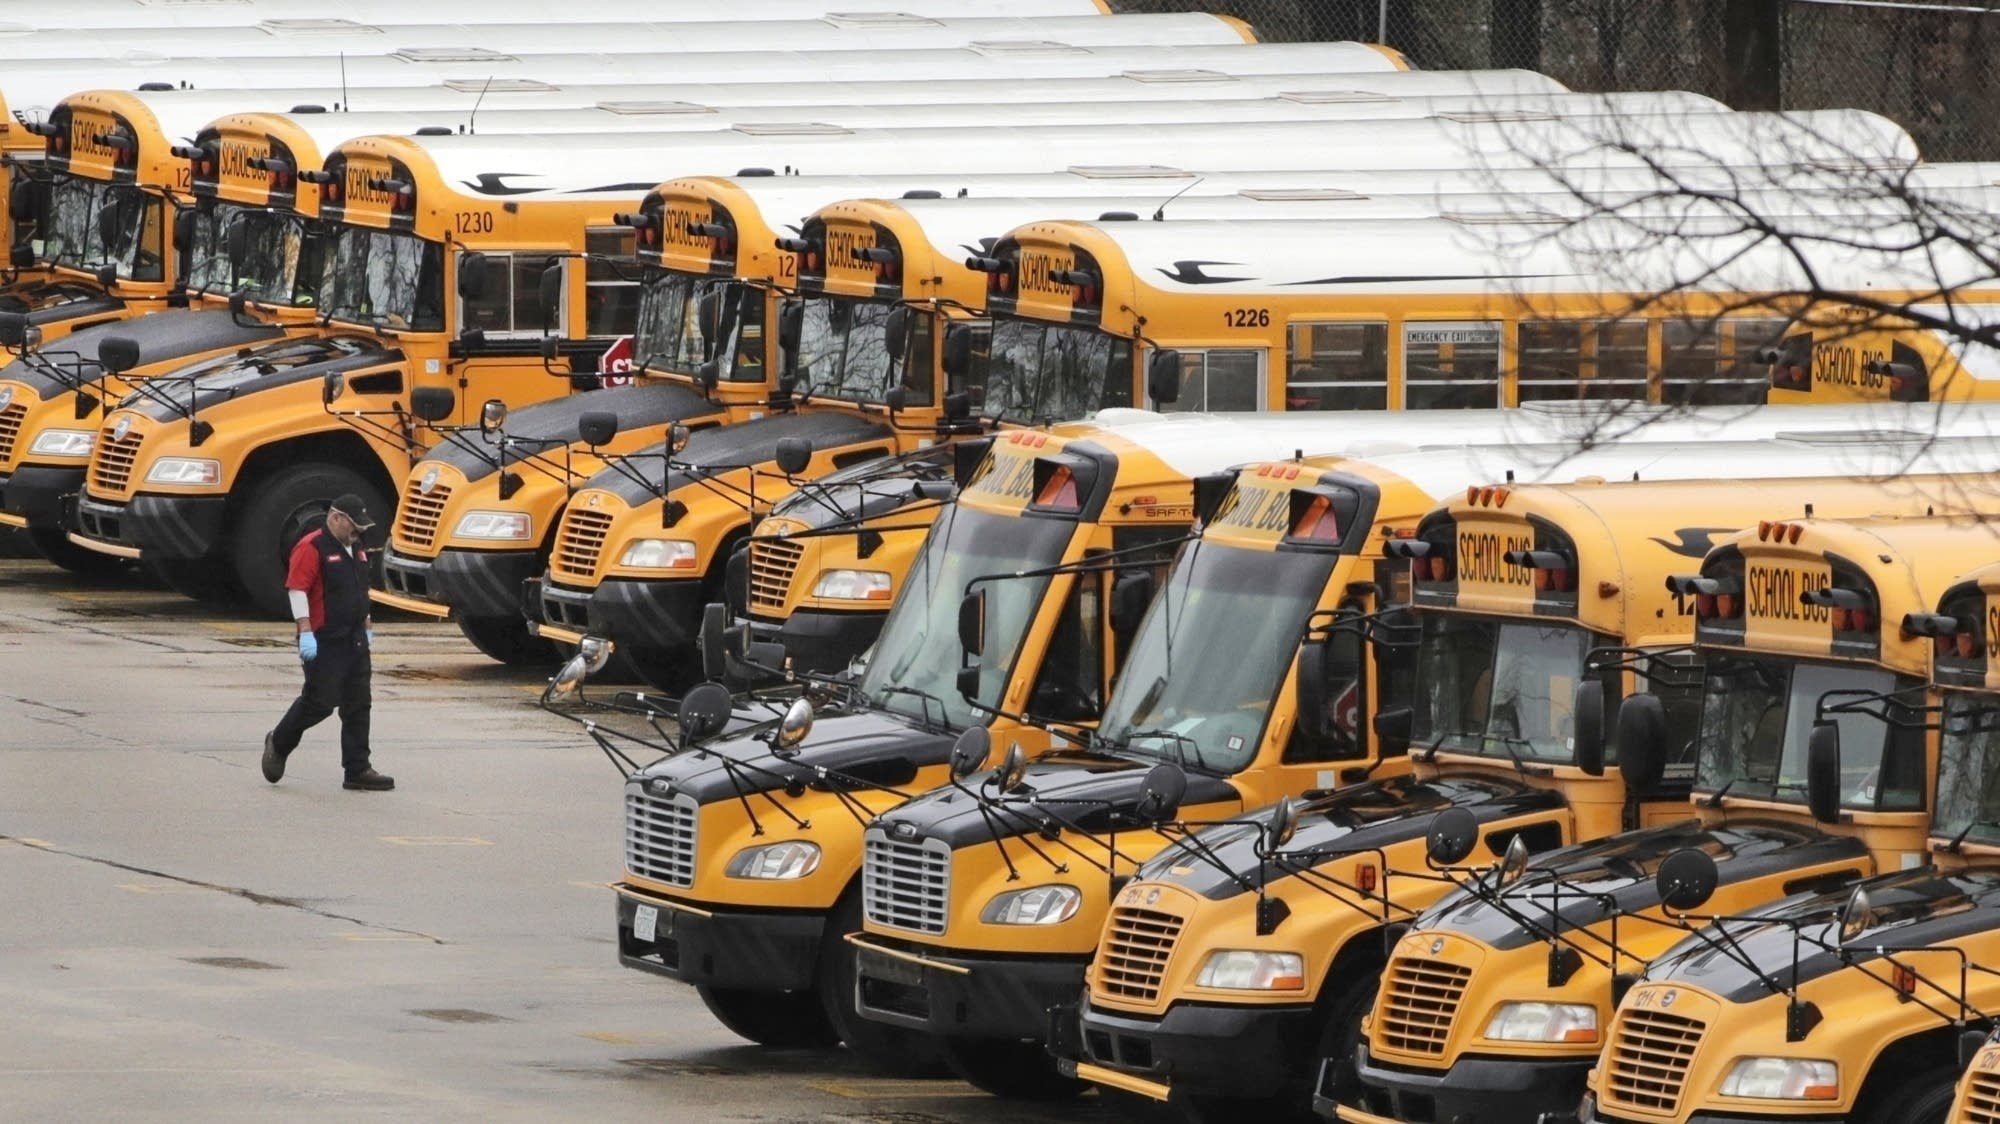 Should schools reopen this fall?   MPR News